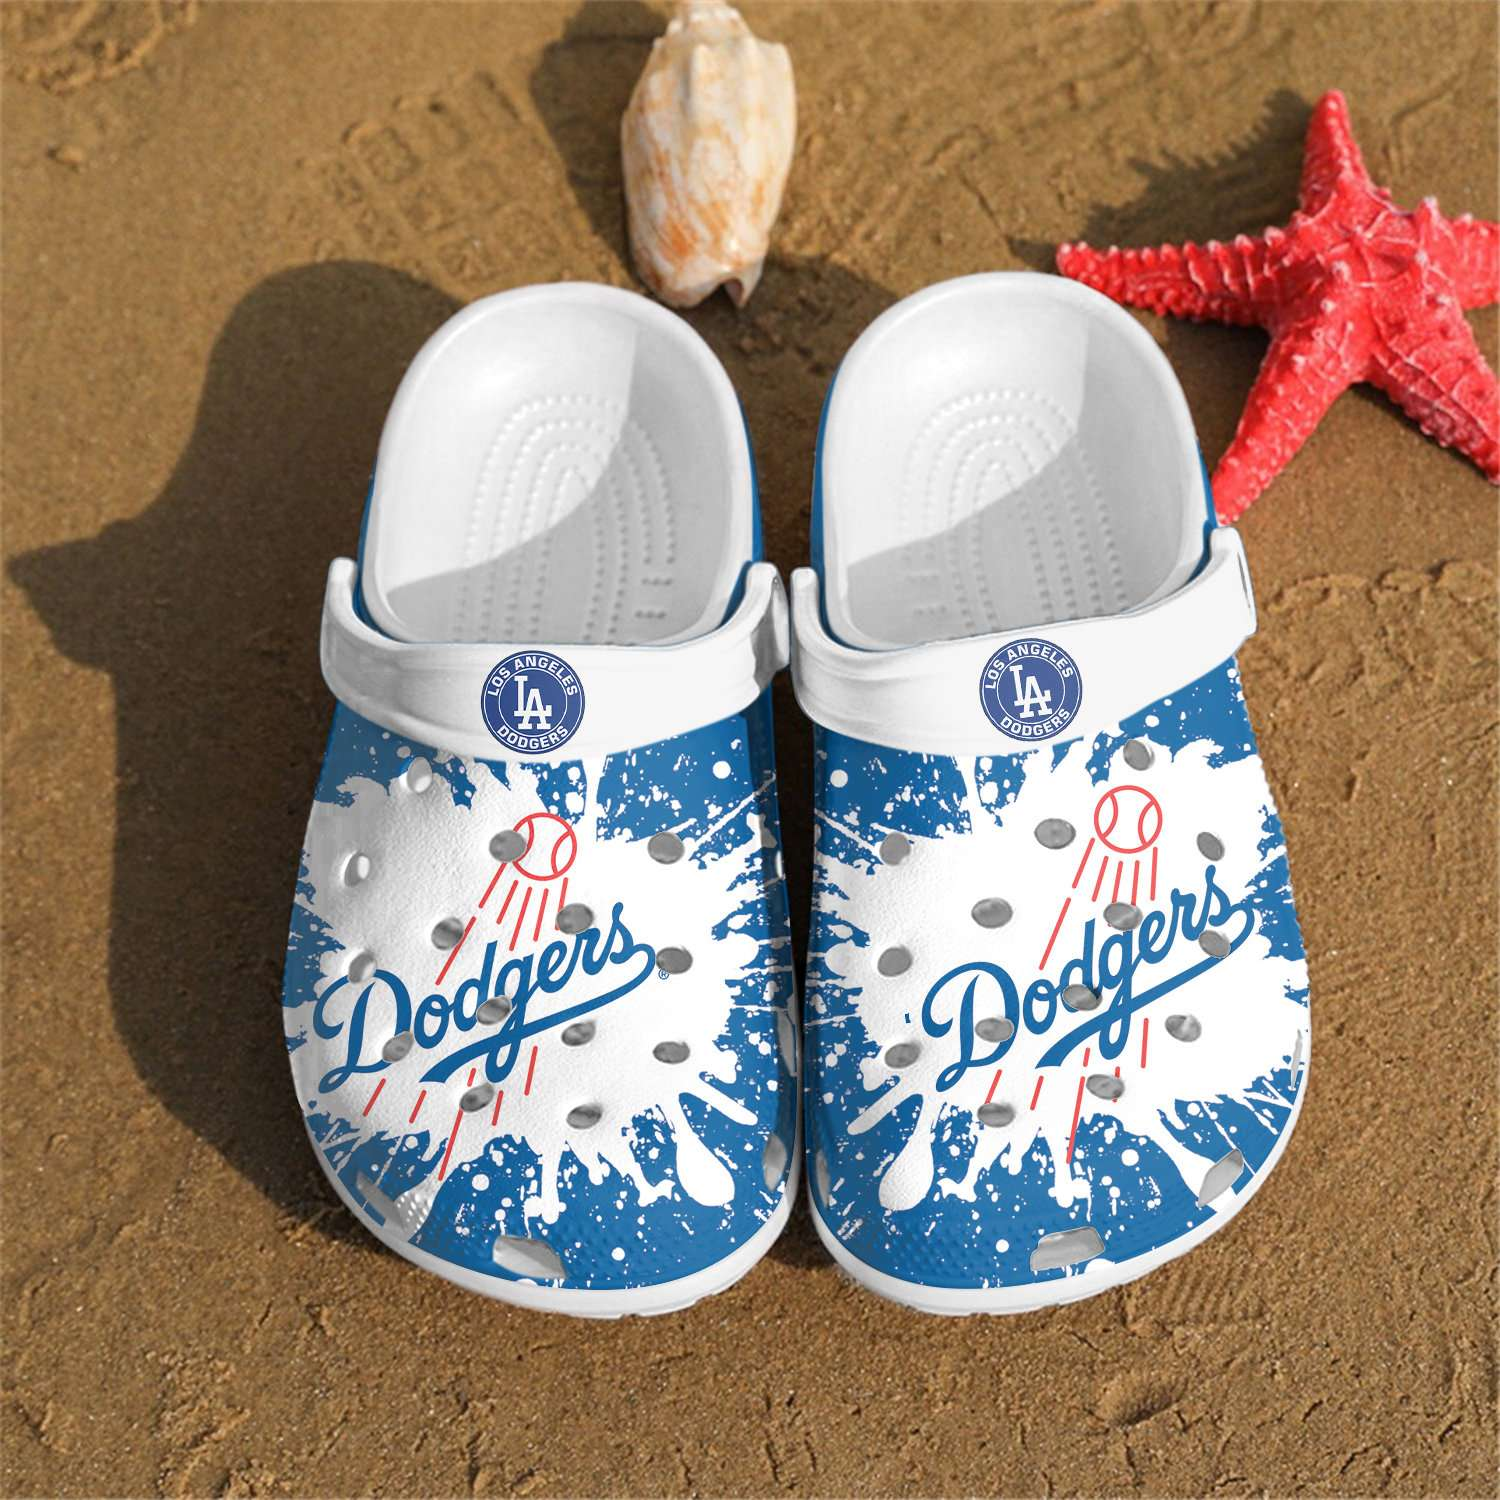 Los Angeles Dodgers Crocs Clog Shoes